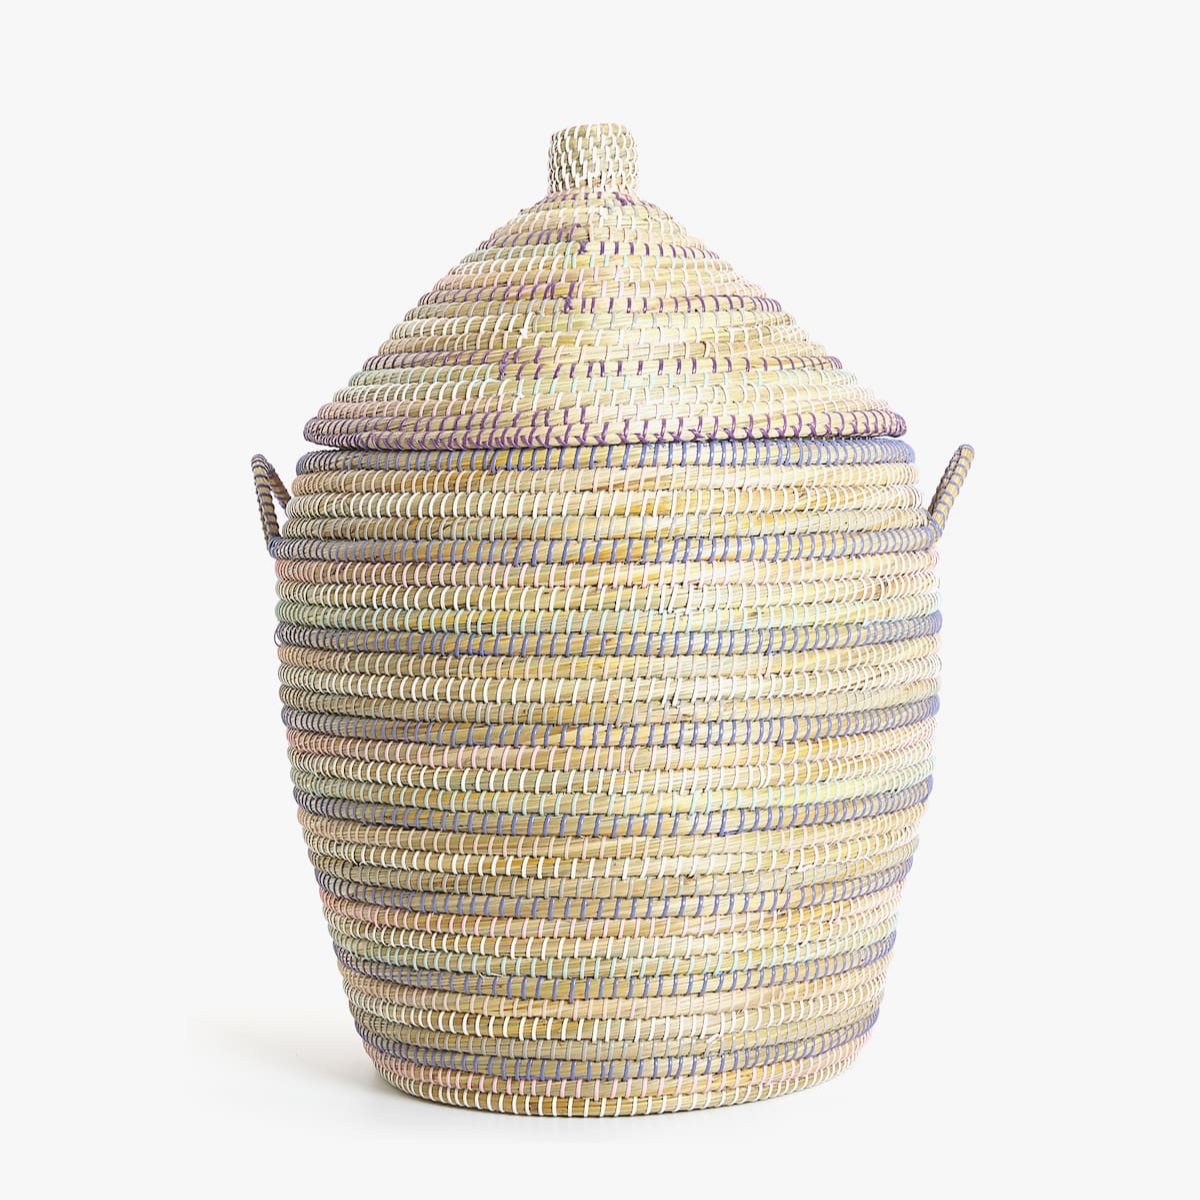 Multicoloured Braided Basket: Reduced to £19.99 from £69.99